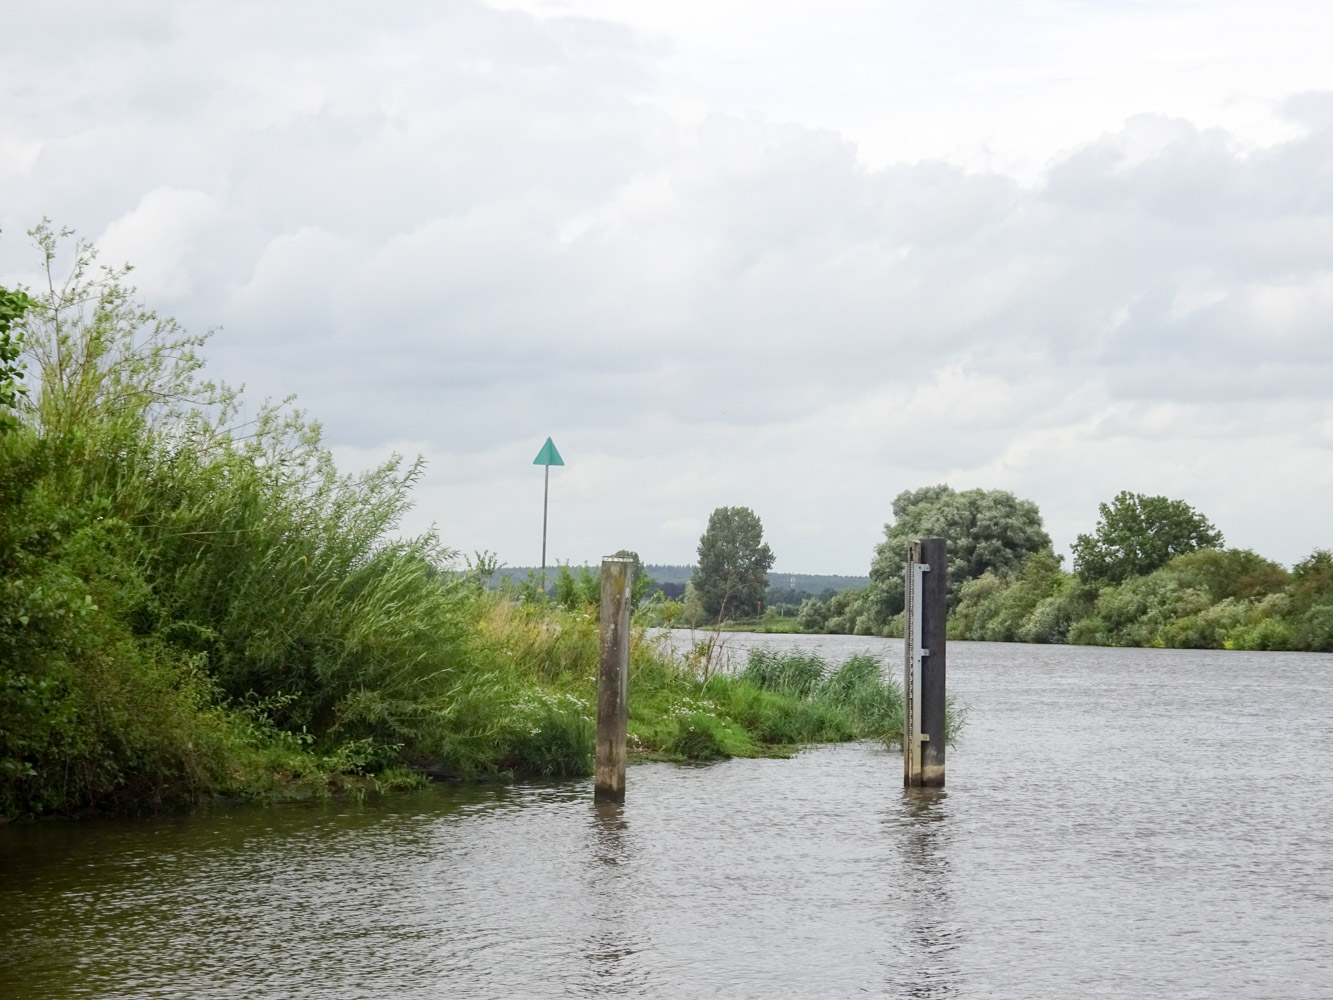 hoge waterstand in de Maas